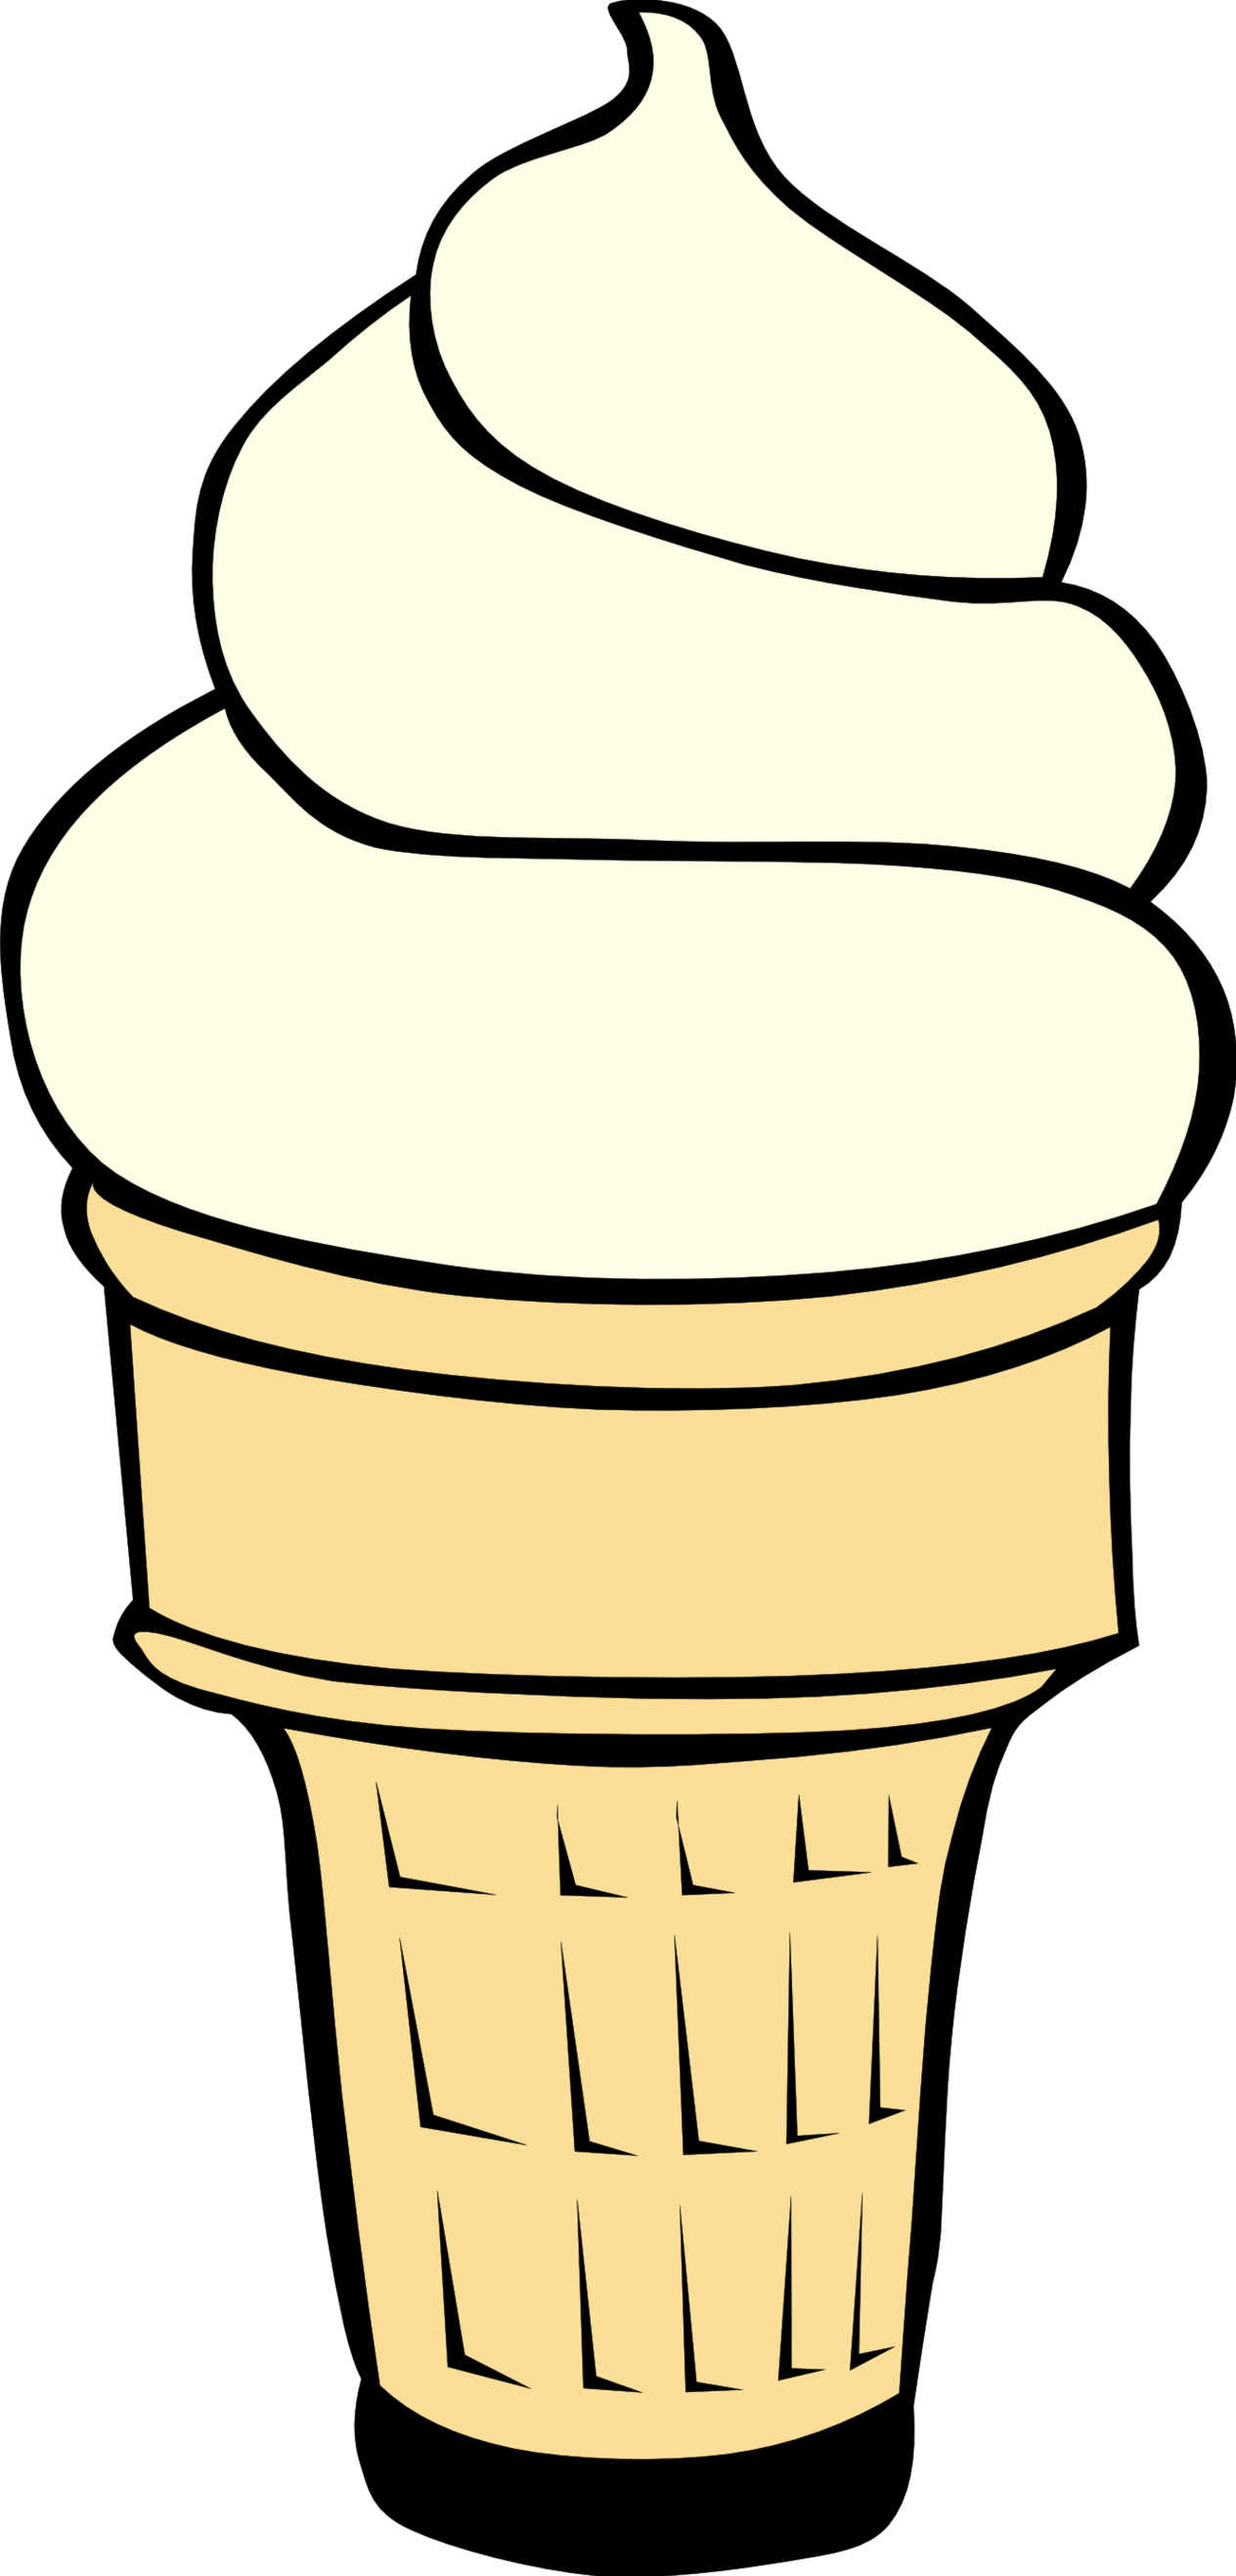 Free Ice Cream Clip Art-Free Ice Cream Clip Art-19